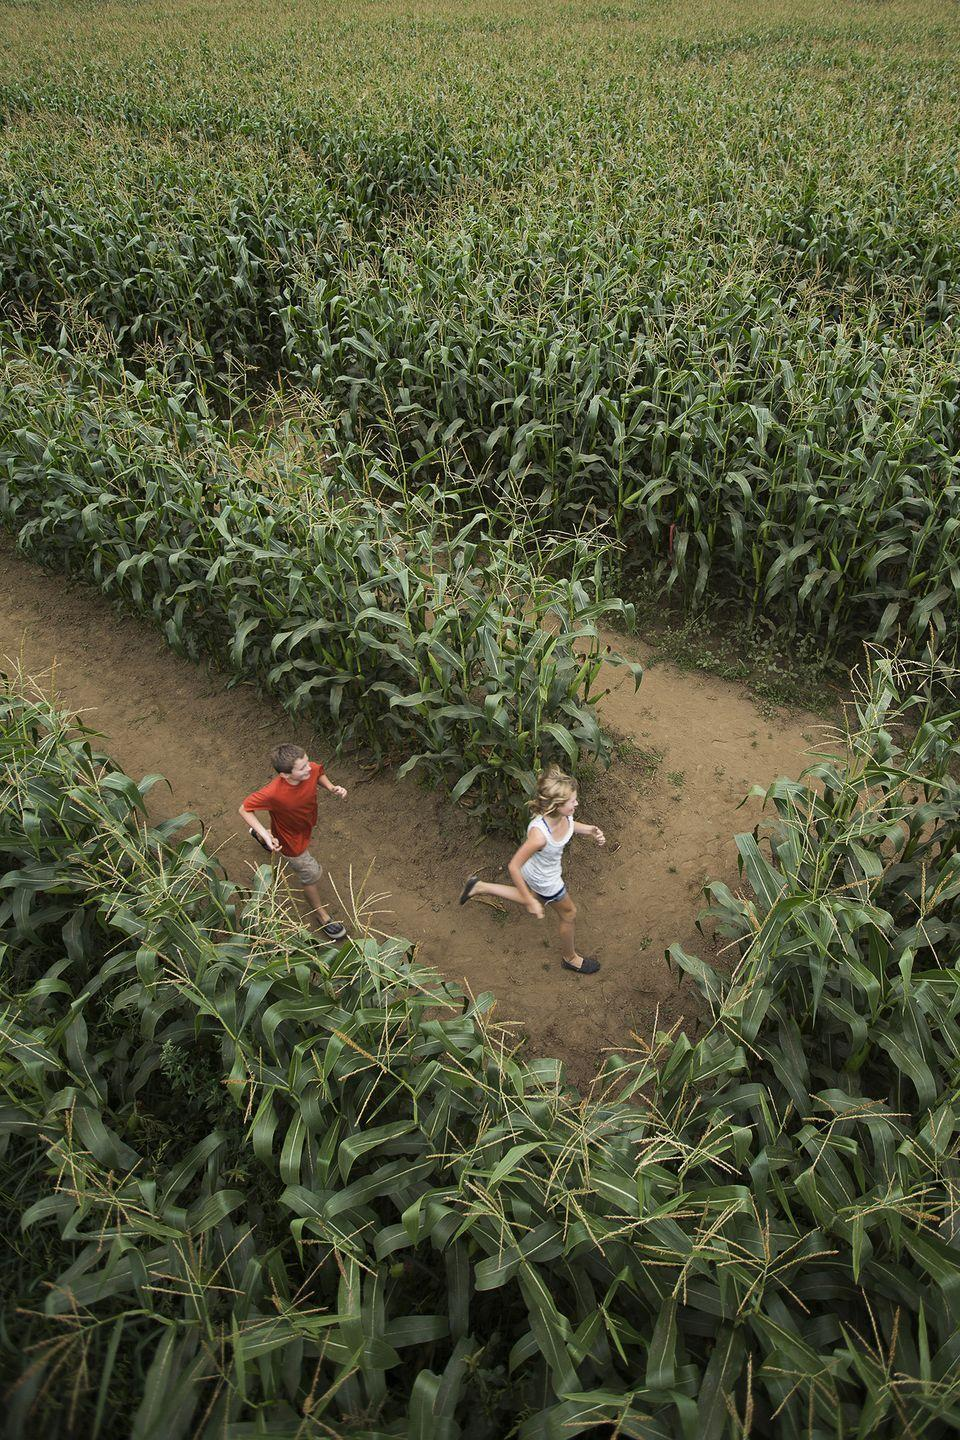 """<p>Put your skills to the test by buying a combo ticket for <a href=""""https://bufordcornmaze.com/"""" rel=""""nofollow noopener"""" target=""""_blank"""" data-ylk=""""slk:Buford's Corn Maze"""" class=""""link rapid-noclick-resp"""">Buford's Corn Maze</a> five-acre labyrinth and haunted forest (for kids ages 10+), and try completing them back to back. In between mazes, be sure to check out the rest of the <a href=""""https://go.redirectingat.com?id=74968X1596630&url=https%3A%2F%2Fwww.tripadvisor.com%2FTourism-g34806-Buford_Georgia-Vacations.html&sref=https%3A%2F%2Fwww.countryliving.com%2Flife%2Ftravel%2Fg22717241%2Fcorn-maze-near-me%2F"""" rel=""""nofollow noopener"""" target=""""_blank"""" data-ylk=""""slk:Buford, Georgia"""" class=""""link rapid-noclick-resp"""">Buford, Georgia</a>, farm's activities like their kid-friendly slides, fun jumping pillows, scenic hayrides, and more.</p><p><a class=""""link rapid-noclick-resp"""" href=""""https://go.redirectingat.com?id=74968X1596630&url=https%3A%2F%2Fwww.tripadvisor.com%2FAttractions-g34806-Activities-Buford_Georgia.html&sref=https%3A%2F%2Fwww.countryliving.com%2Flife%2Ftravel%2Fg22717241%2Fcorn-maze-near-me%2F"""" rel=""""nofollow noopener"""" target=""""_blank"""" data-ylk=""""slk:PLAN YOUR TRIP"""">PLAN YOUR TRIP</a> </p>"""